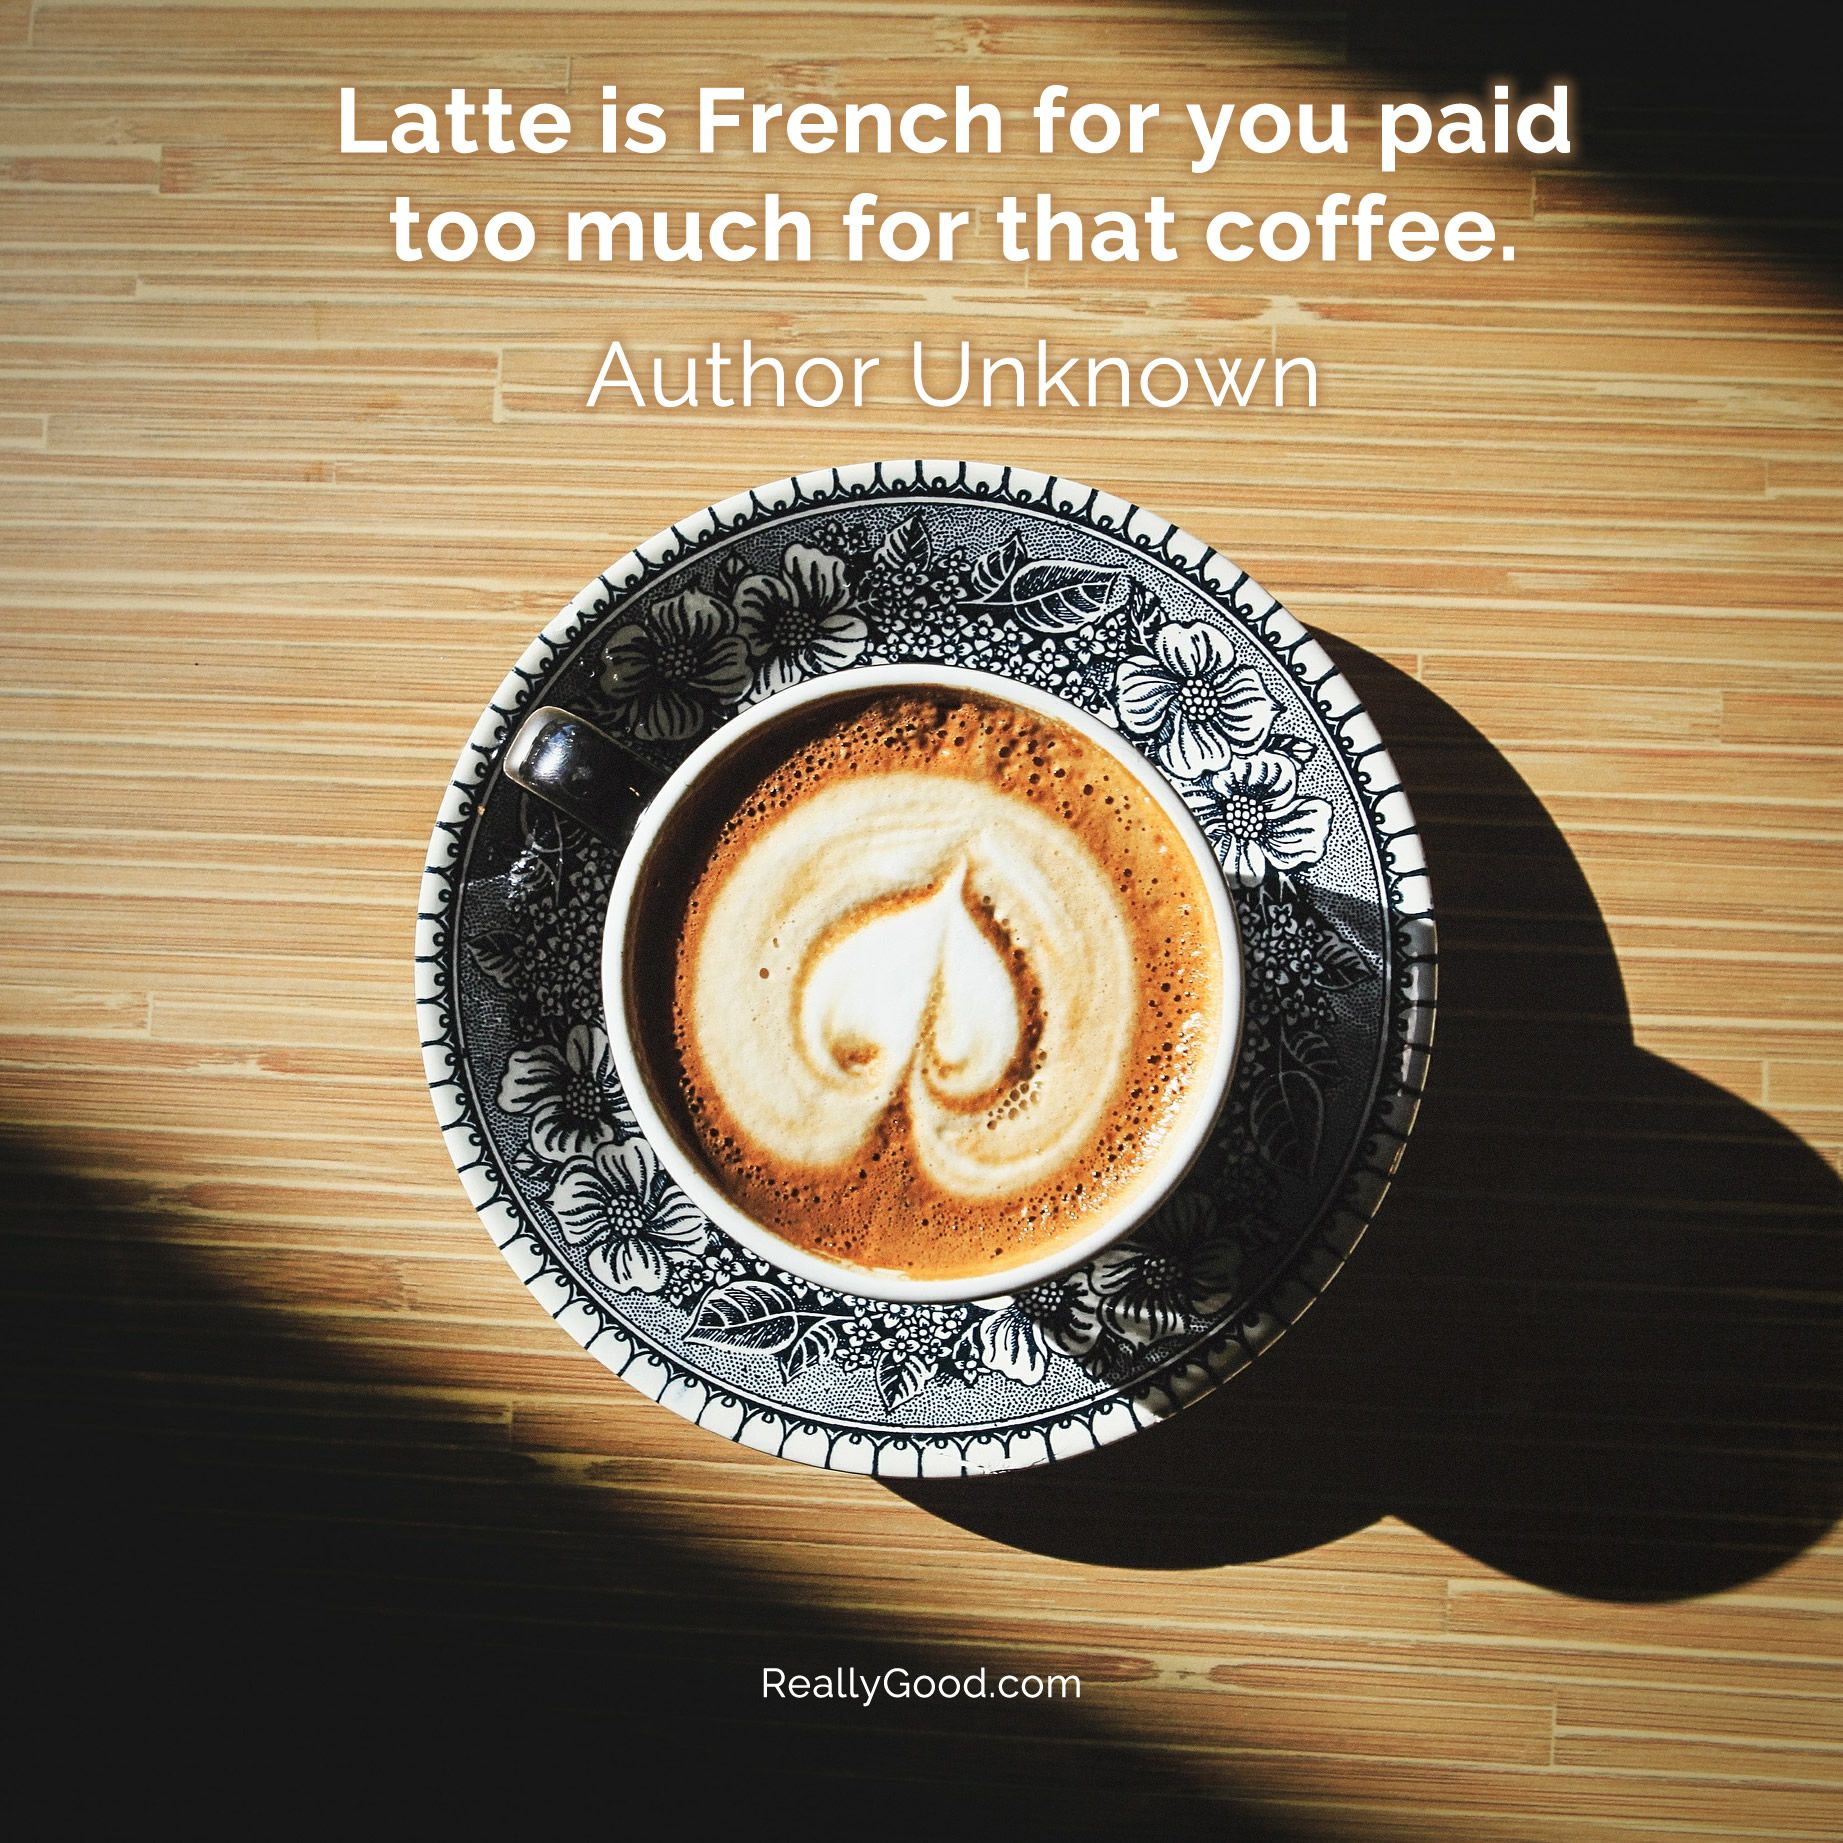 Latte is French for you paid too much for that coffee